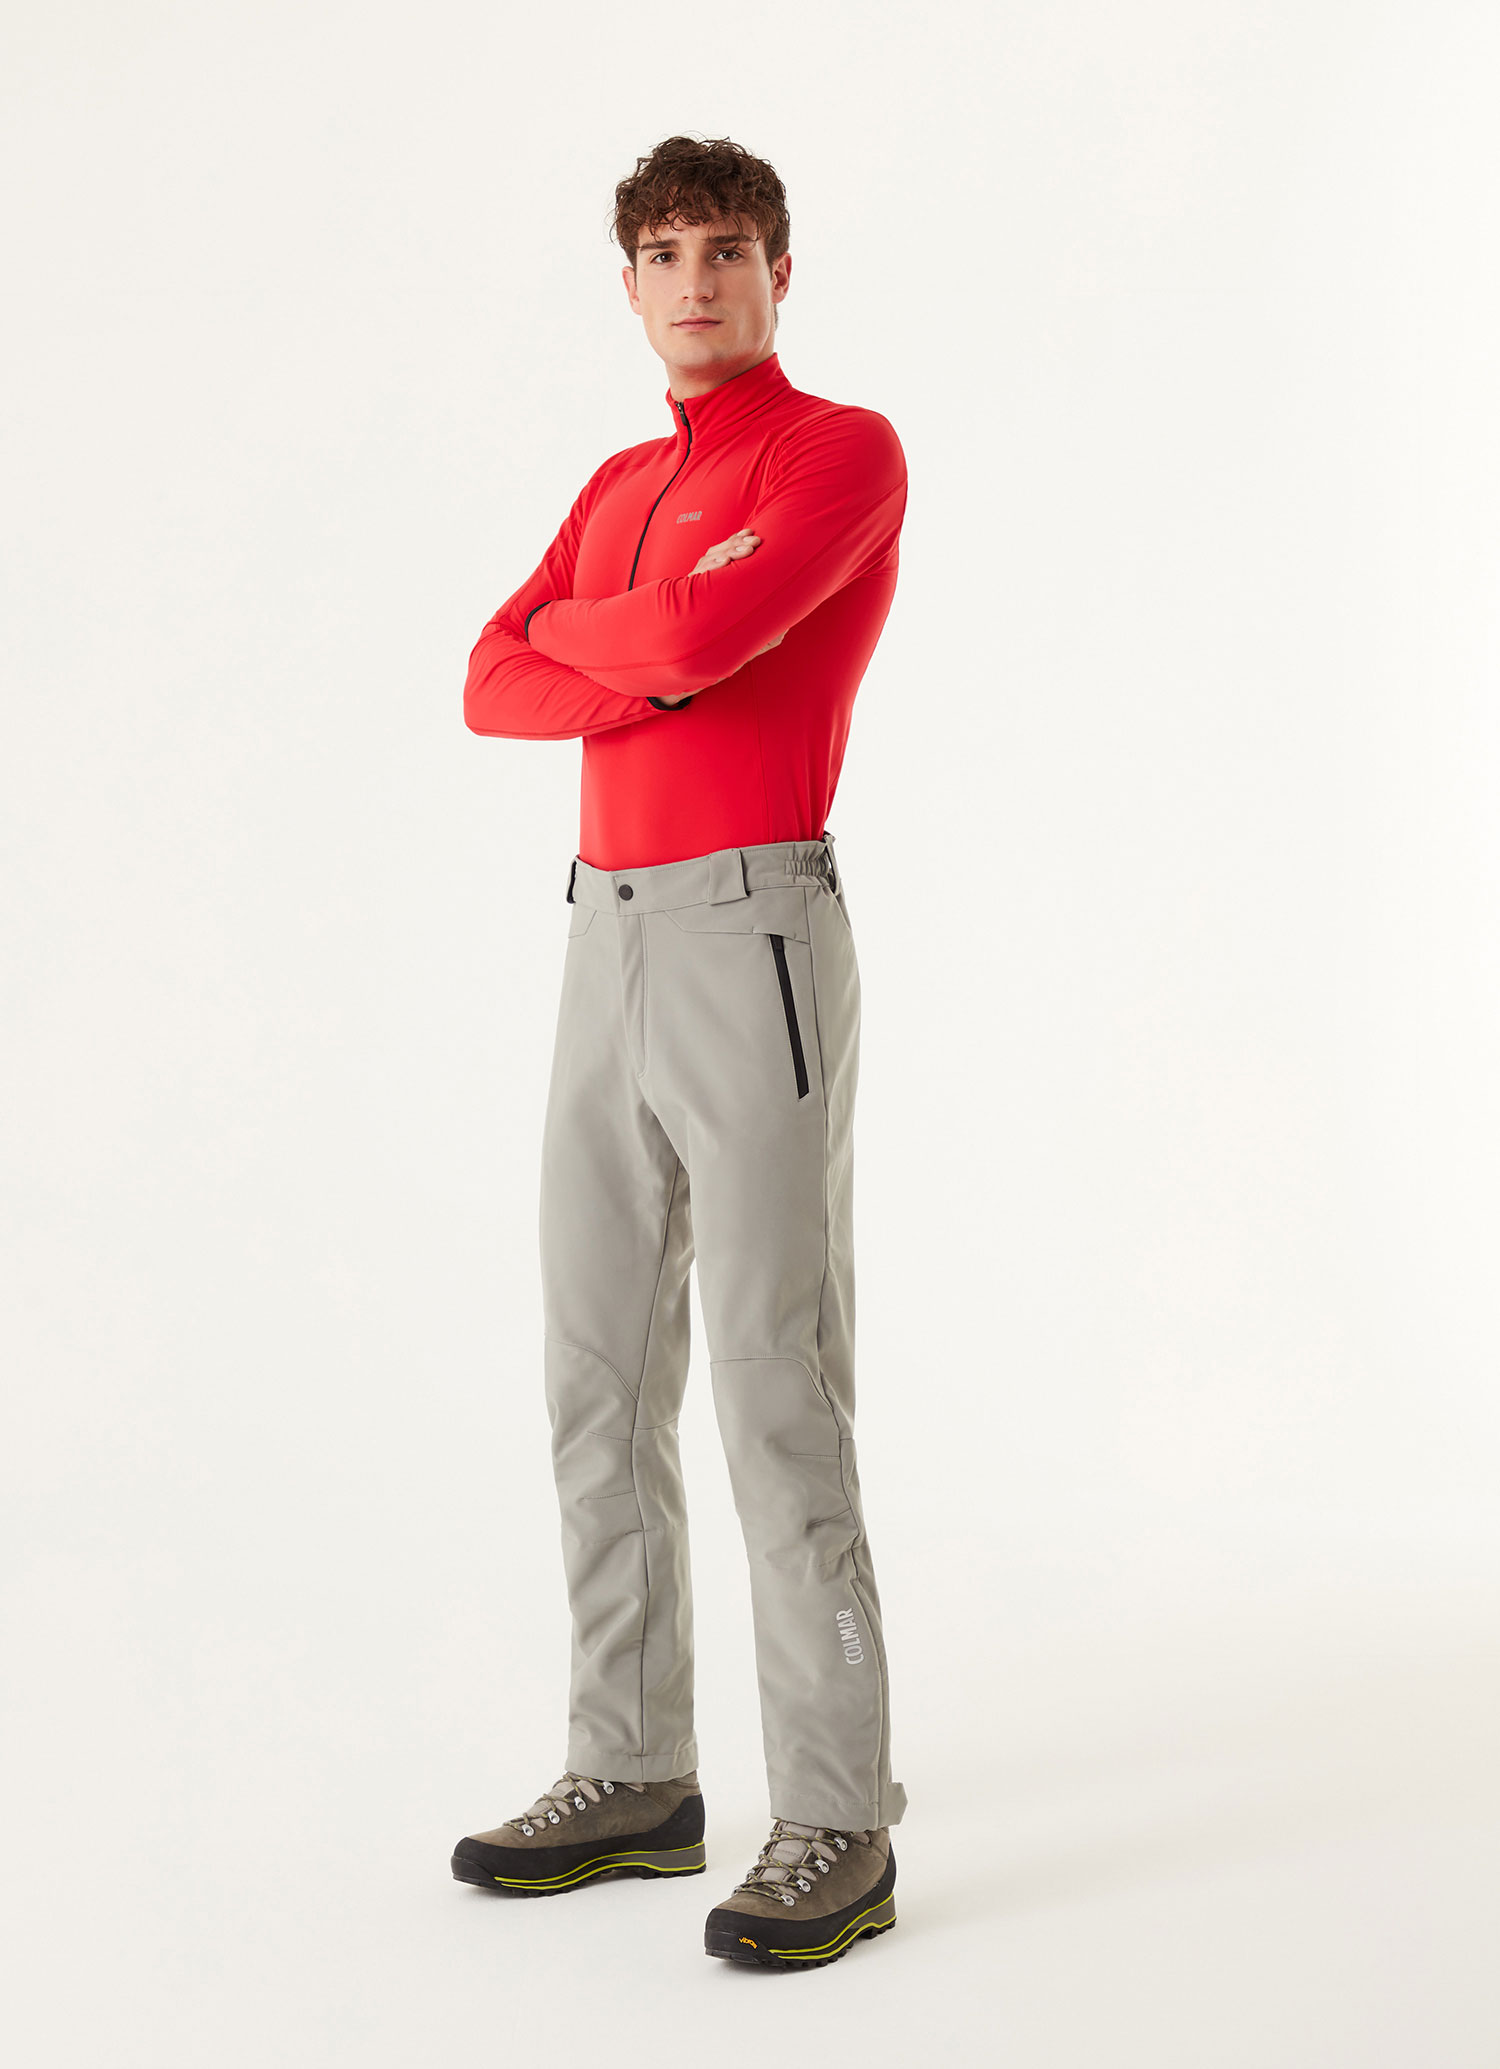 Colmar men's softshell ski pants with a 10,000 mm WPT rating